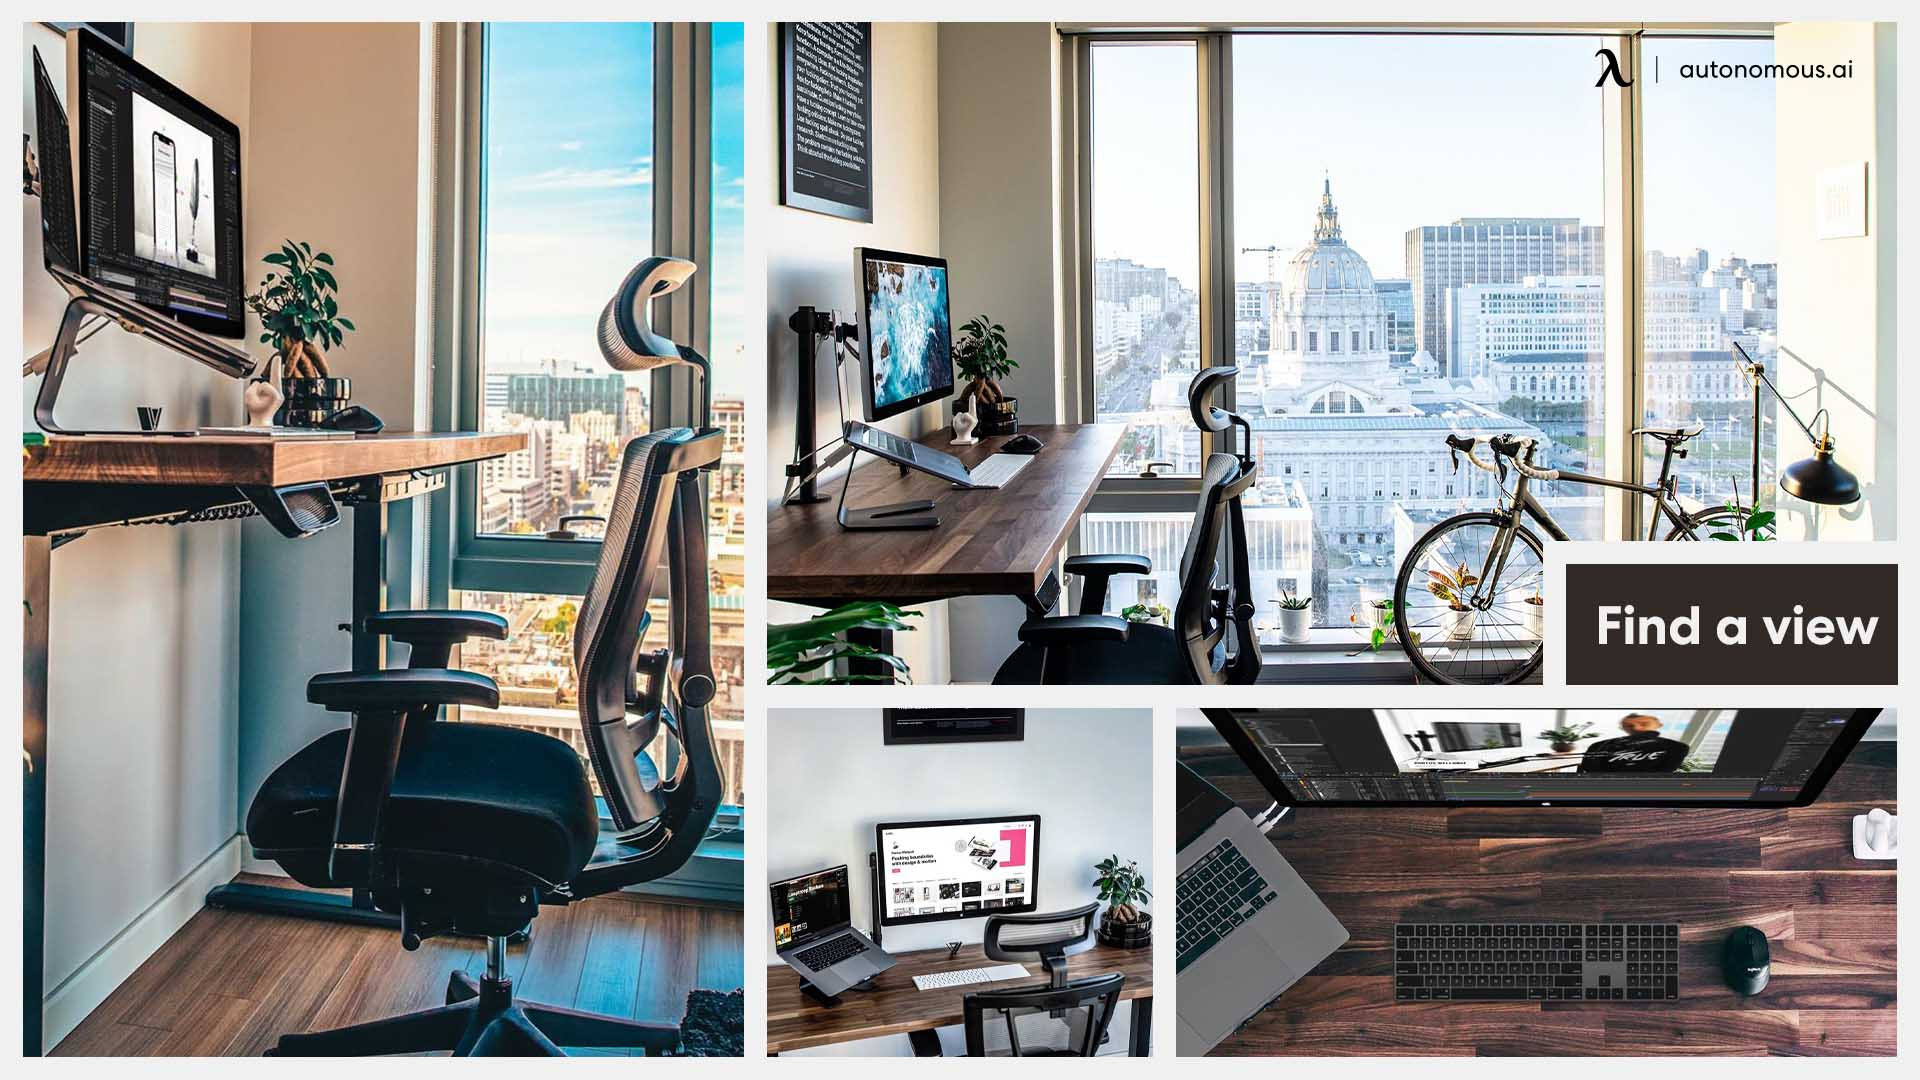 What are the pros and cons of designing a stylish home office?